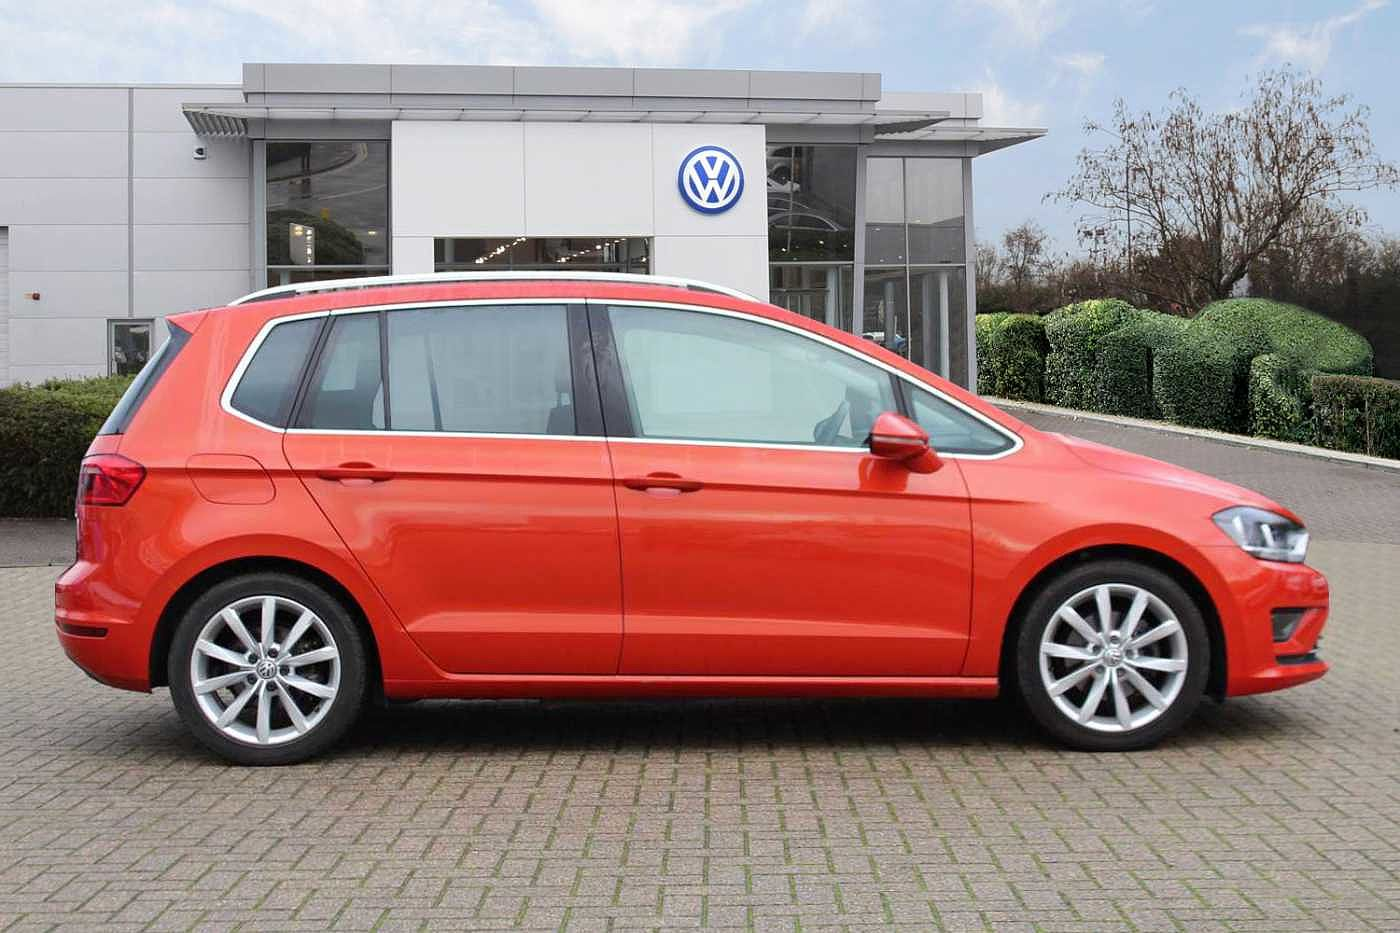 Golf SV 1.4 TSI GT 150PS MPV 5Dr